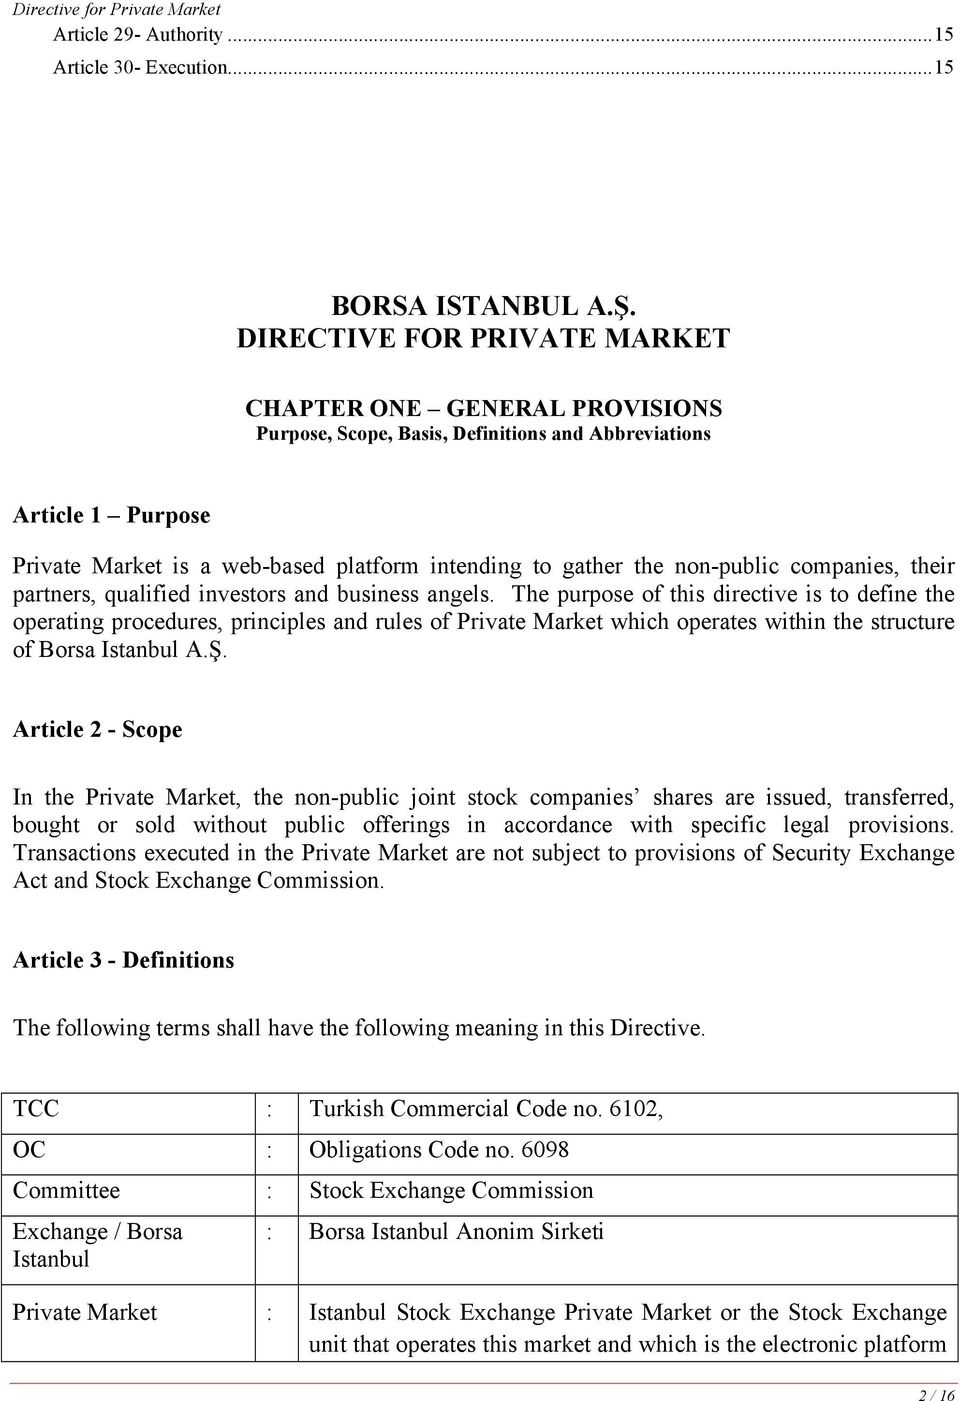 joint stock companies act 1856 pdf